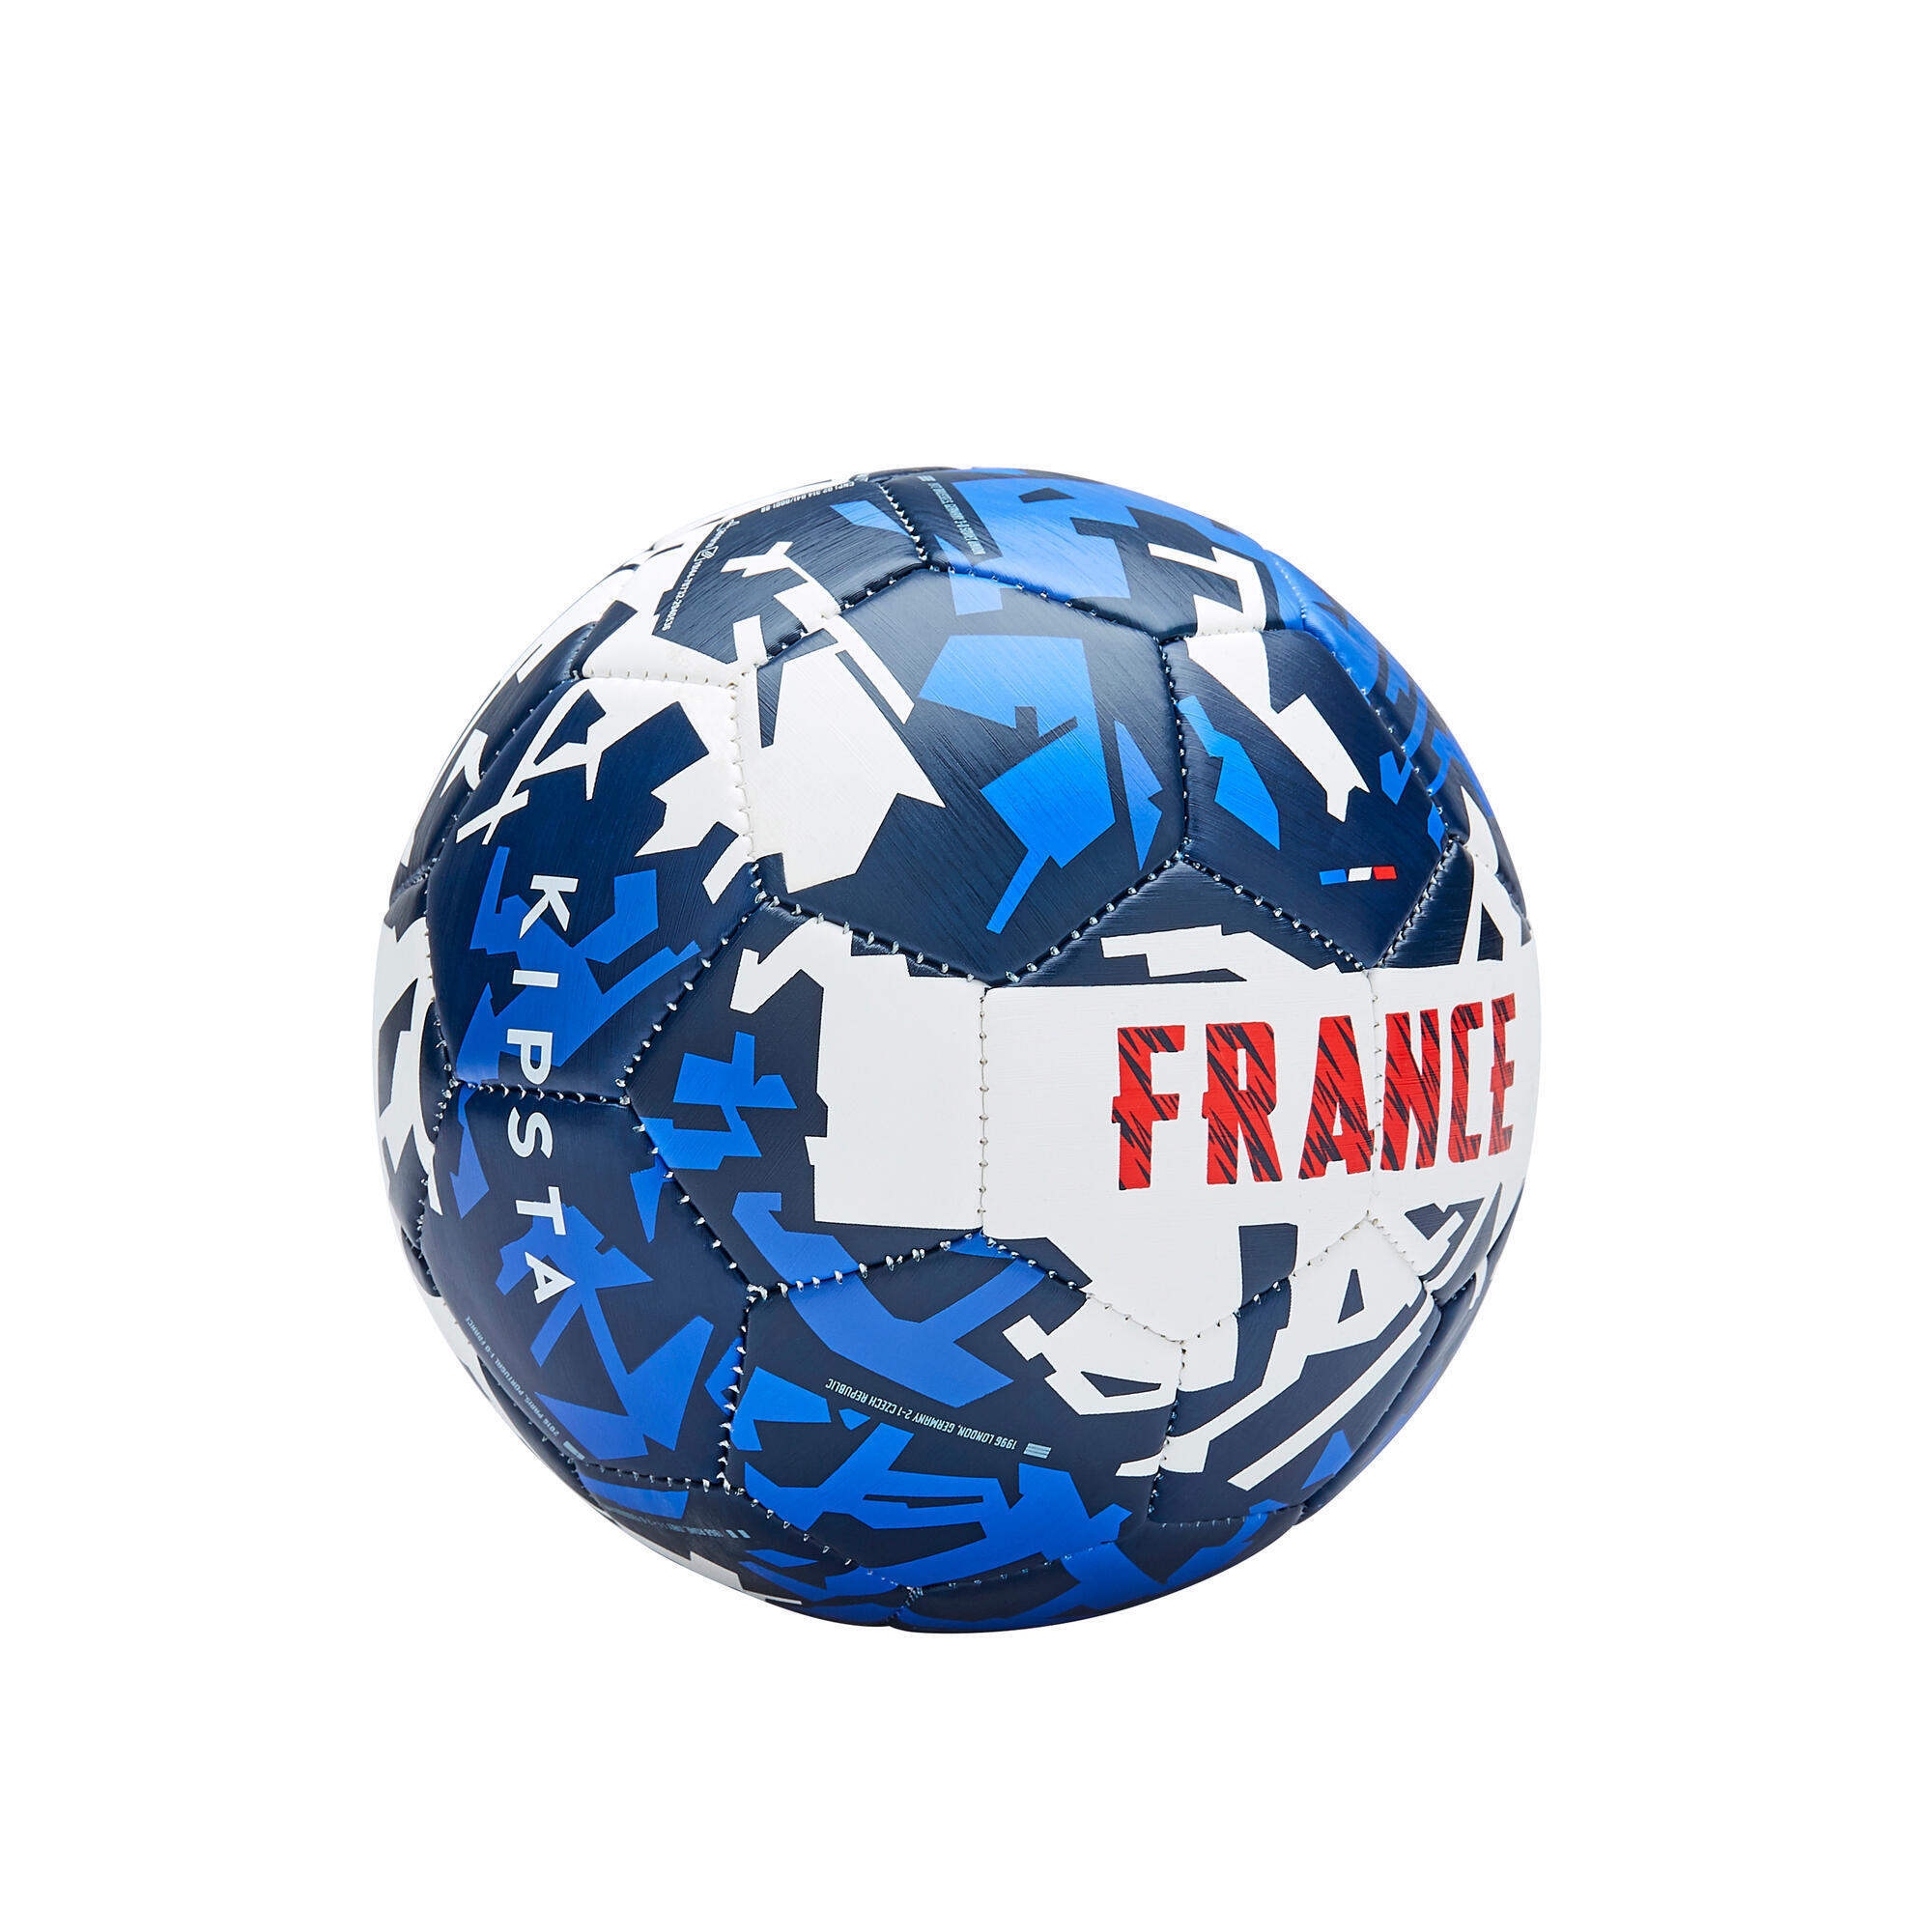 Ballon de <strong>football</strong> france 2020 t1 kipsta